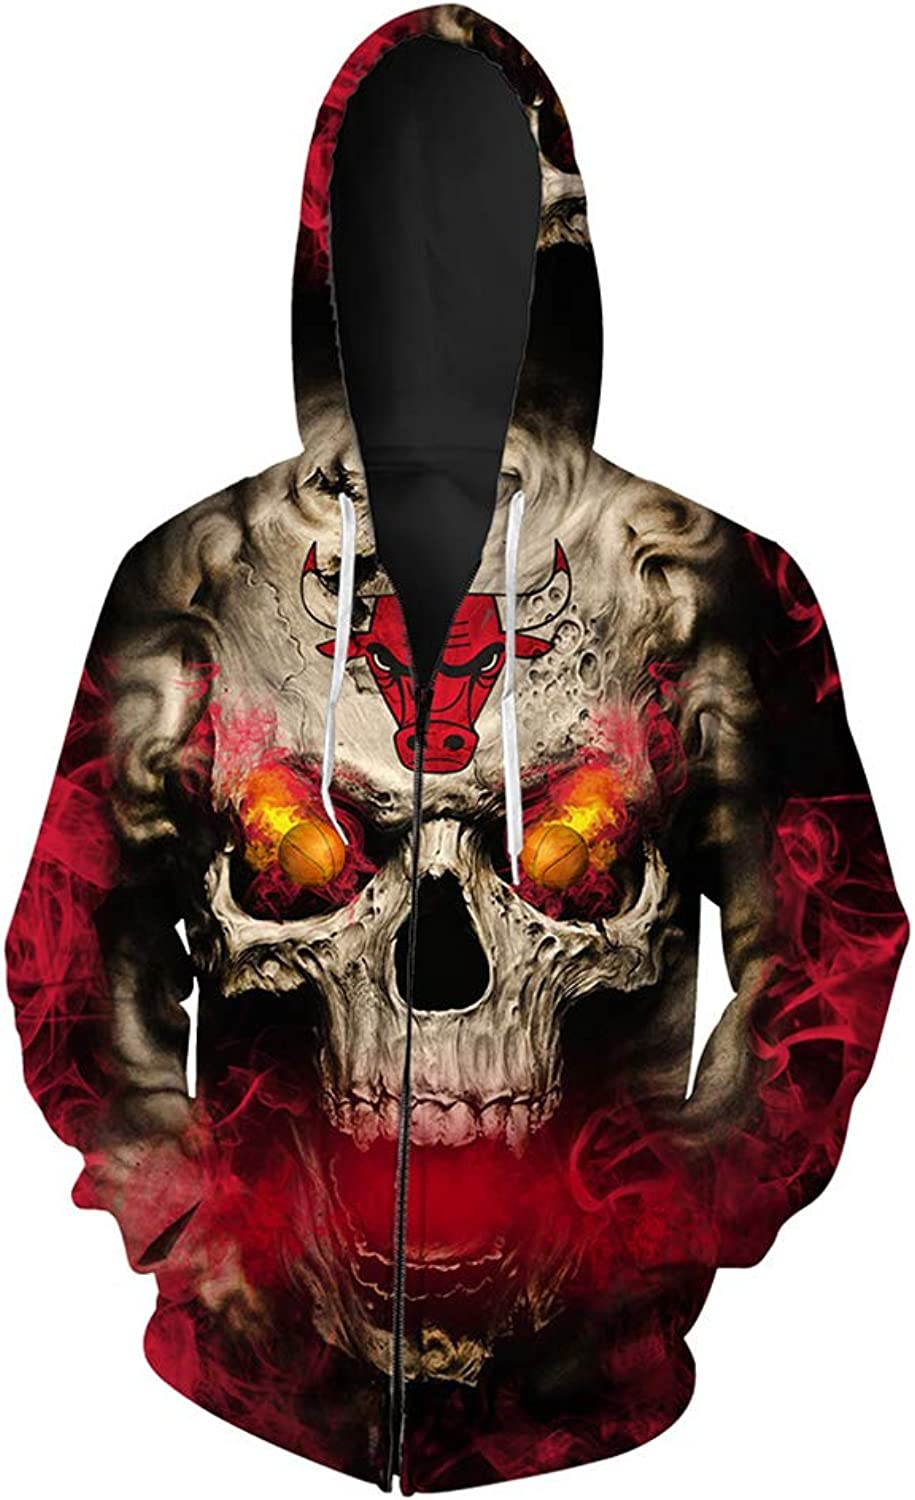 Fashion Hooded Hoodie Zipper Sports Hooded Sweatshirt, Unisex Spring and Autumn Anime Printing Fashion RolePlaying Loose Large Size Casual Couple,(S6XL)